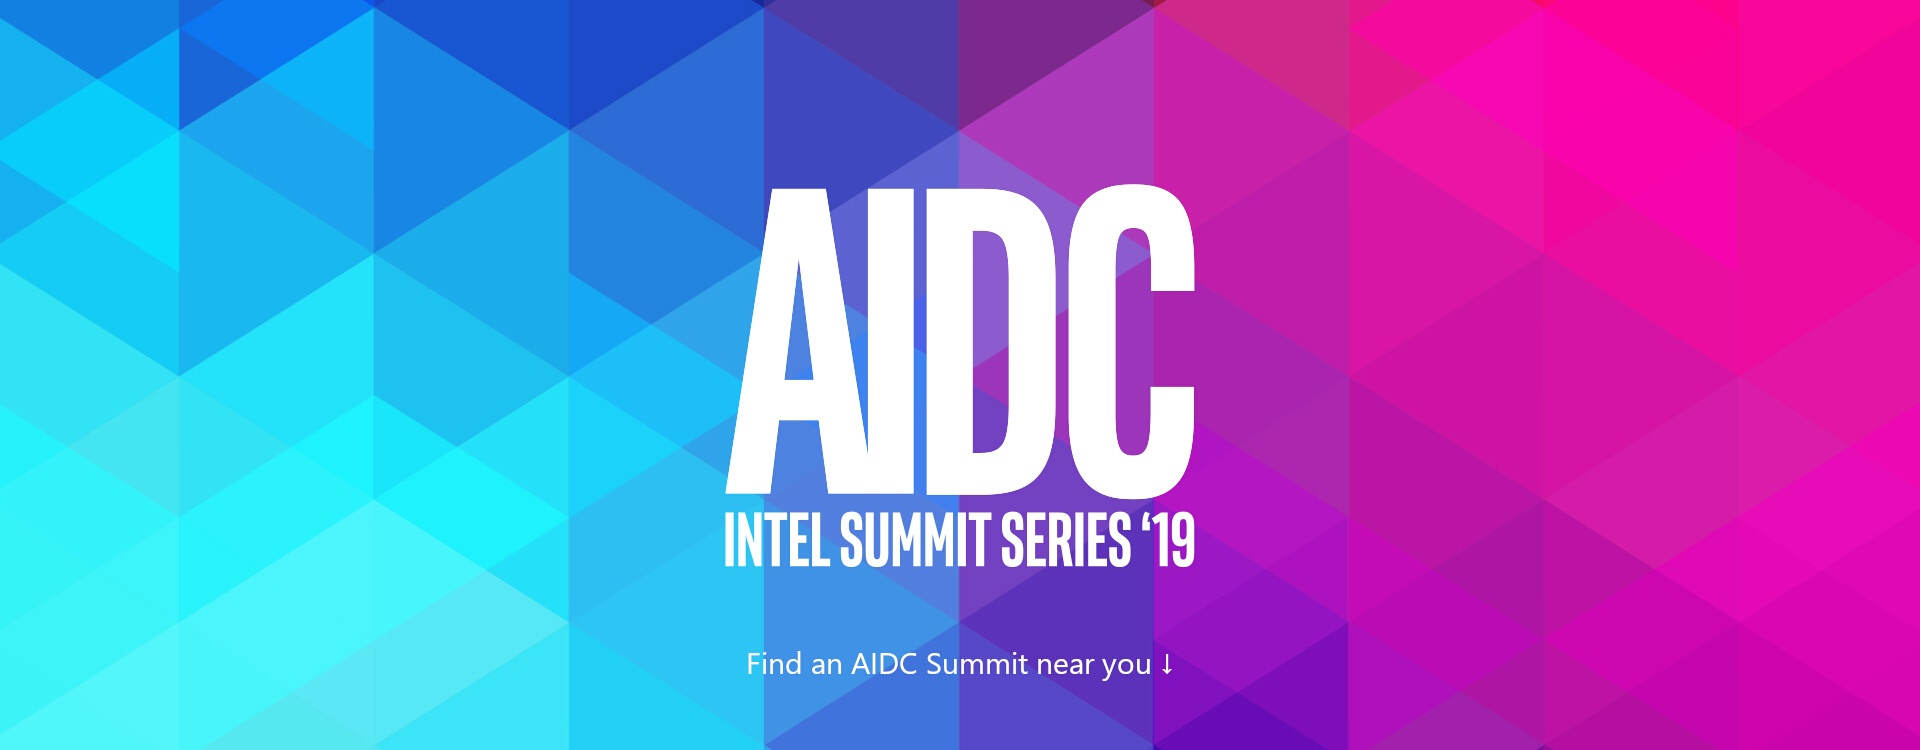 AIDC Intel Summit Series '19